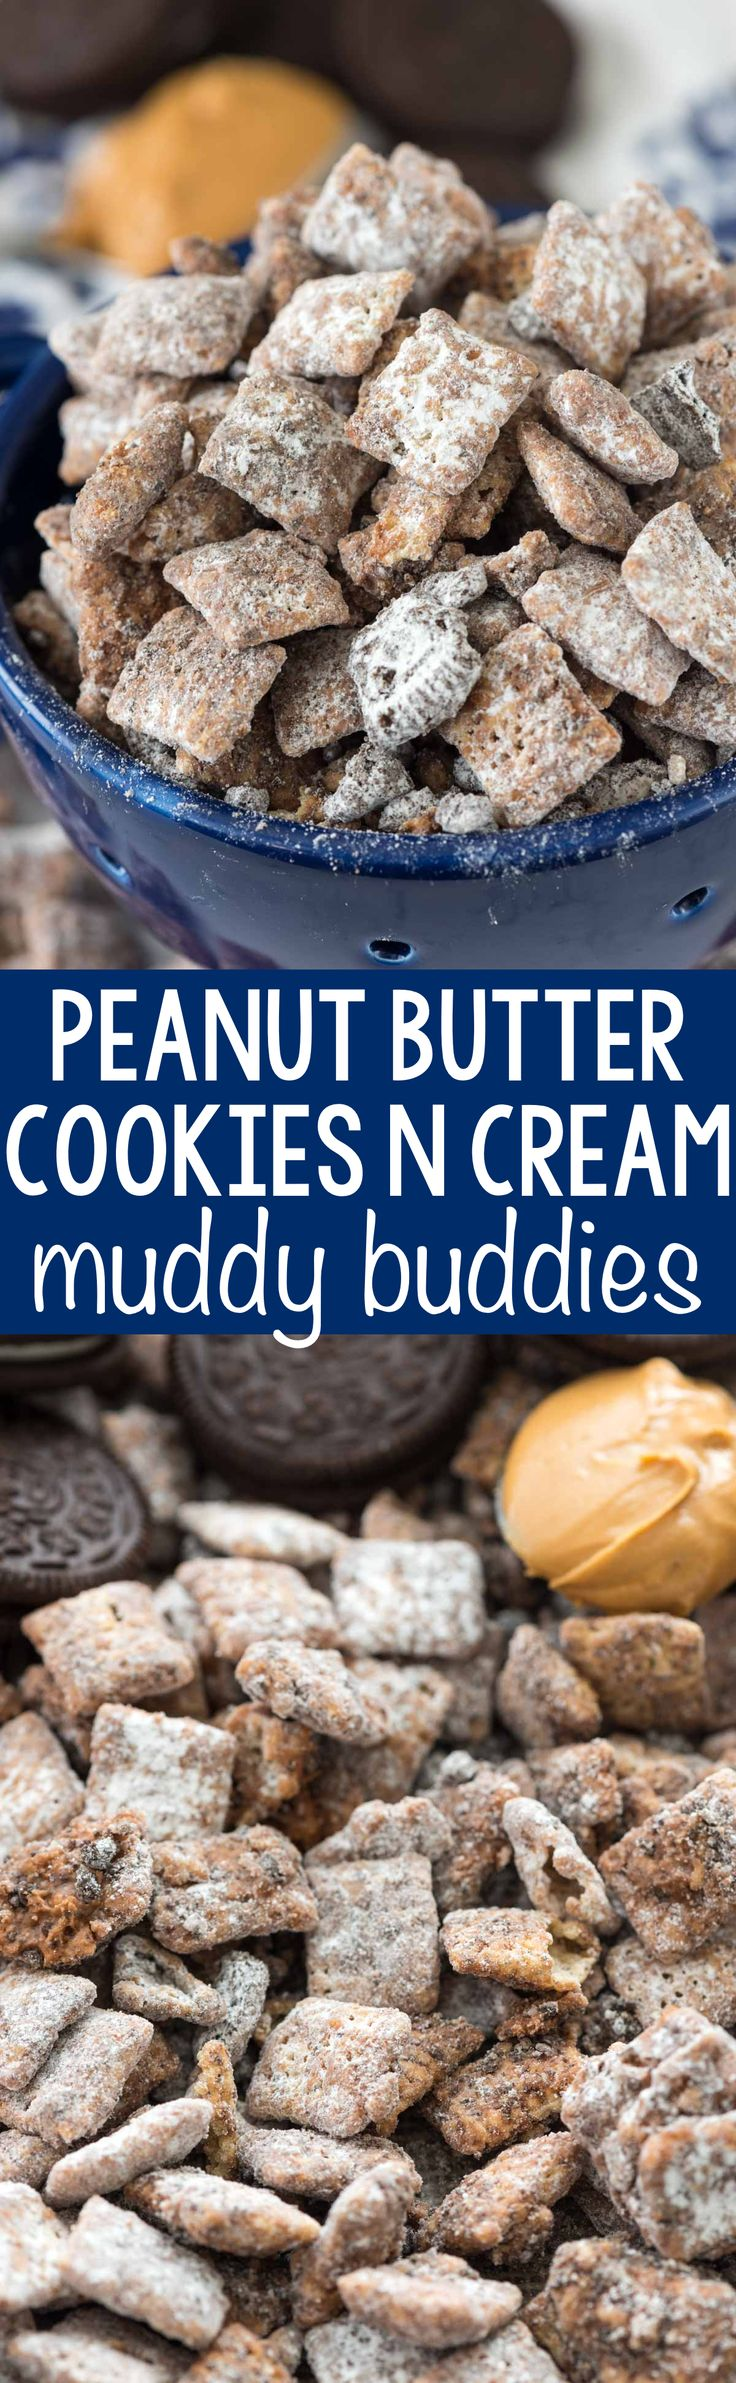 Peanut Butter Cookies 'n Cream Muddy Buddies - this easy puppy chow recipe adds crushed Oreos to the topping! Who knew you could improve on the muddy buddy recipe?